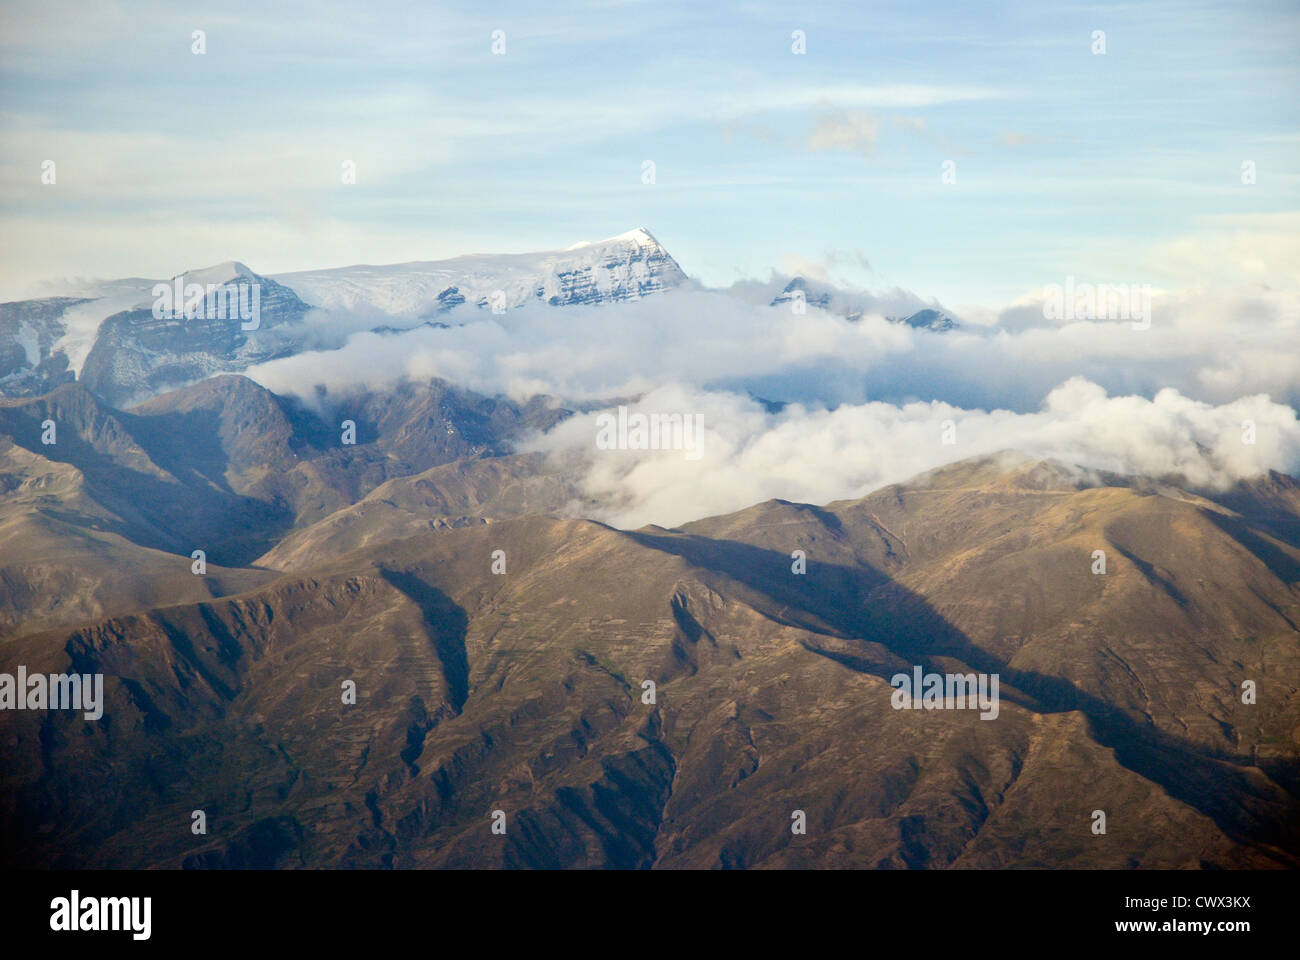 Aerial view of the mountain Mururata, Cordillera of the Andes - Stock Image